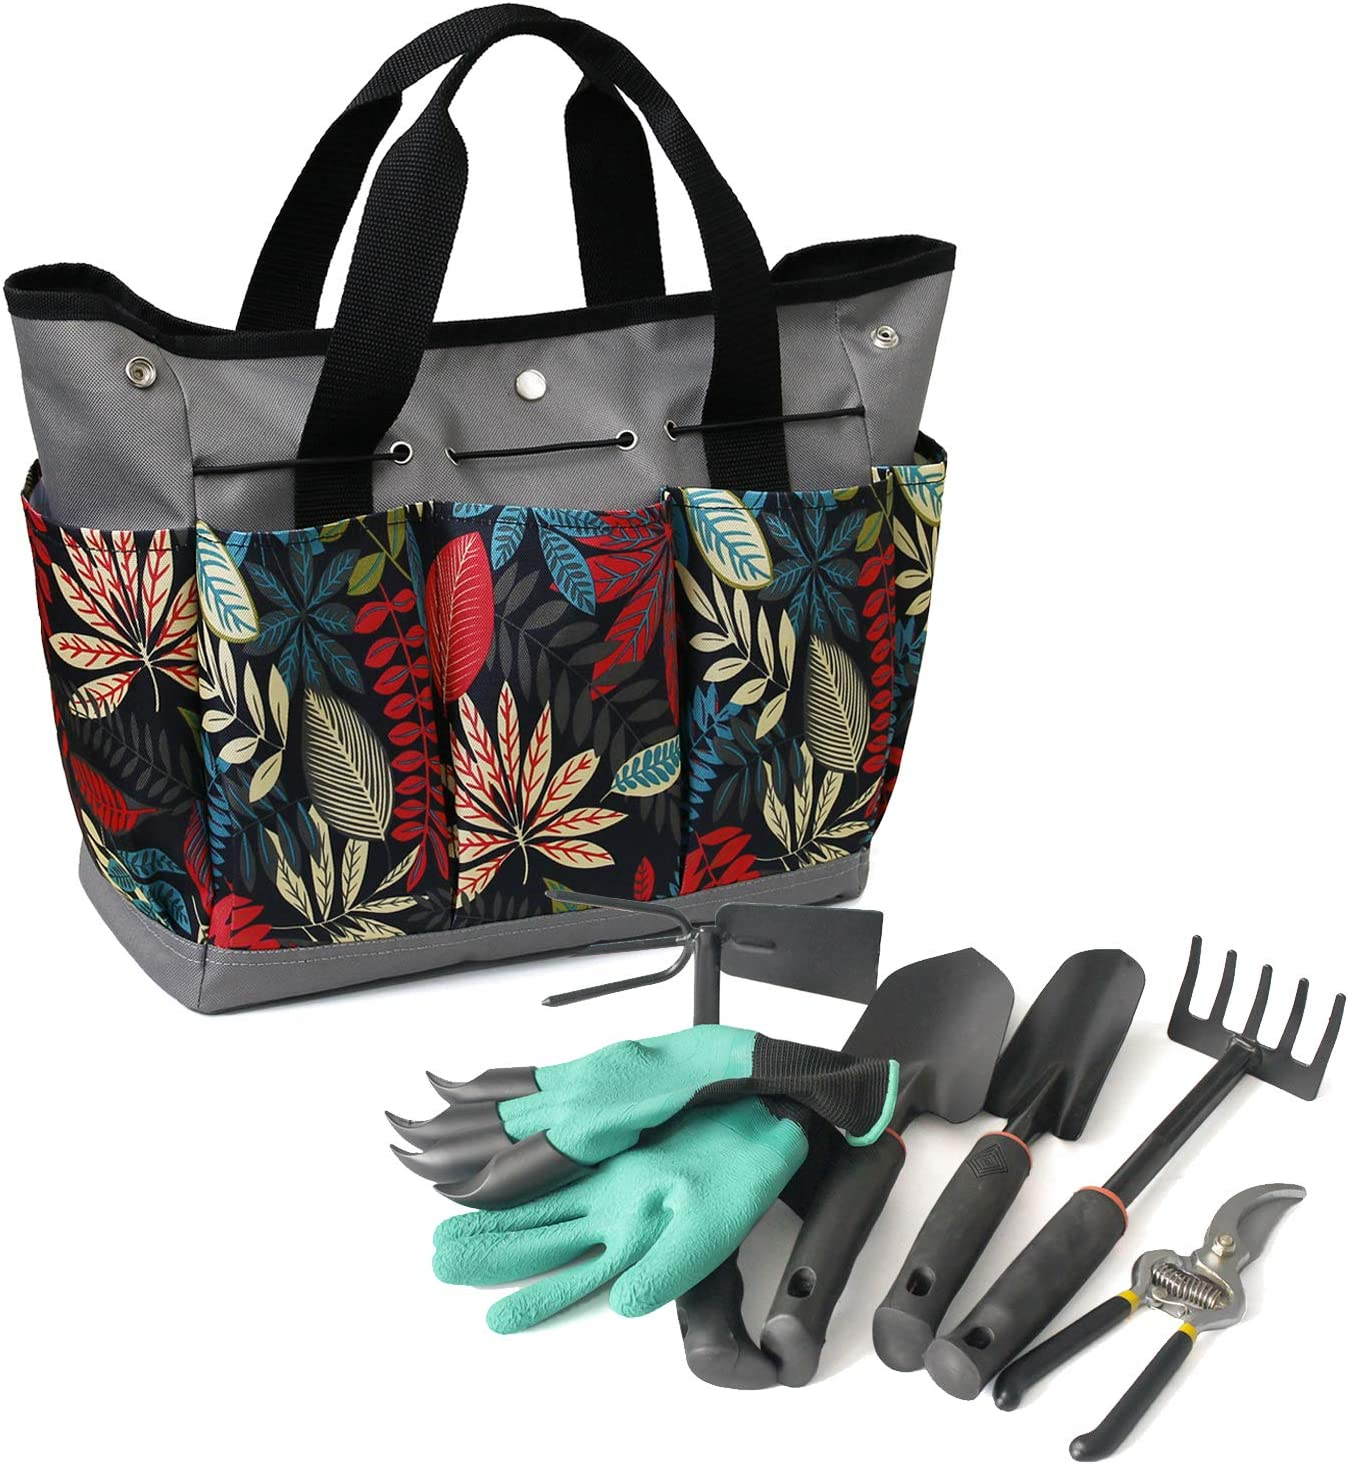 MYDAYS 7PACK Canvas Garden Tool Tote Bag, Heavy-Duty Gardening Pouch, Vegetable Herb Garden Hand Tool Storage Tote, with 8 Pockets and Leather Handle, Floral Gardening Gift, Tools Included (Grey2)